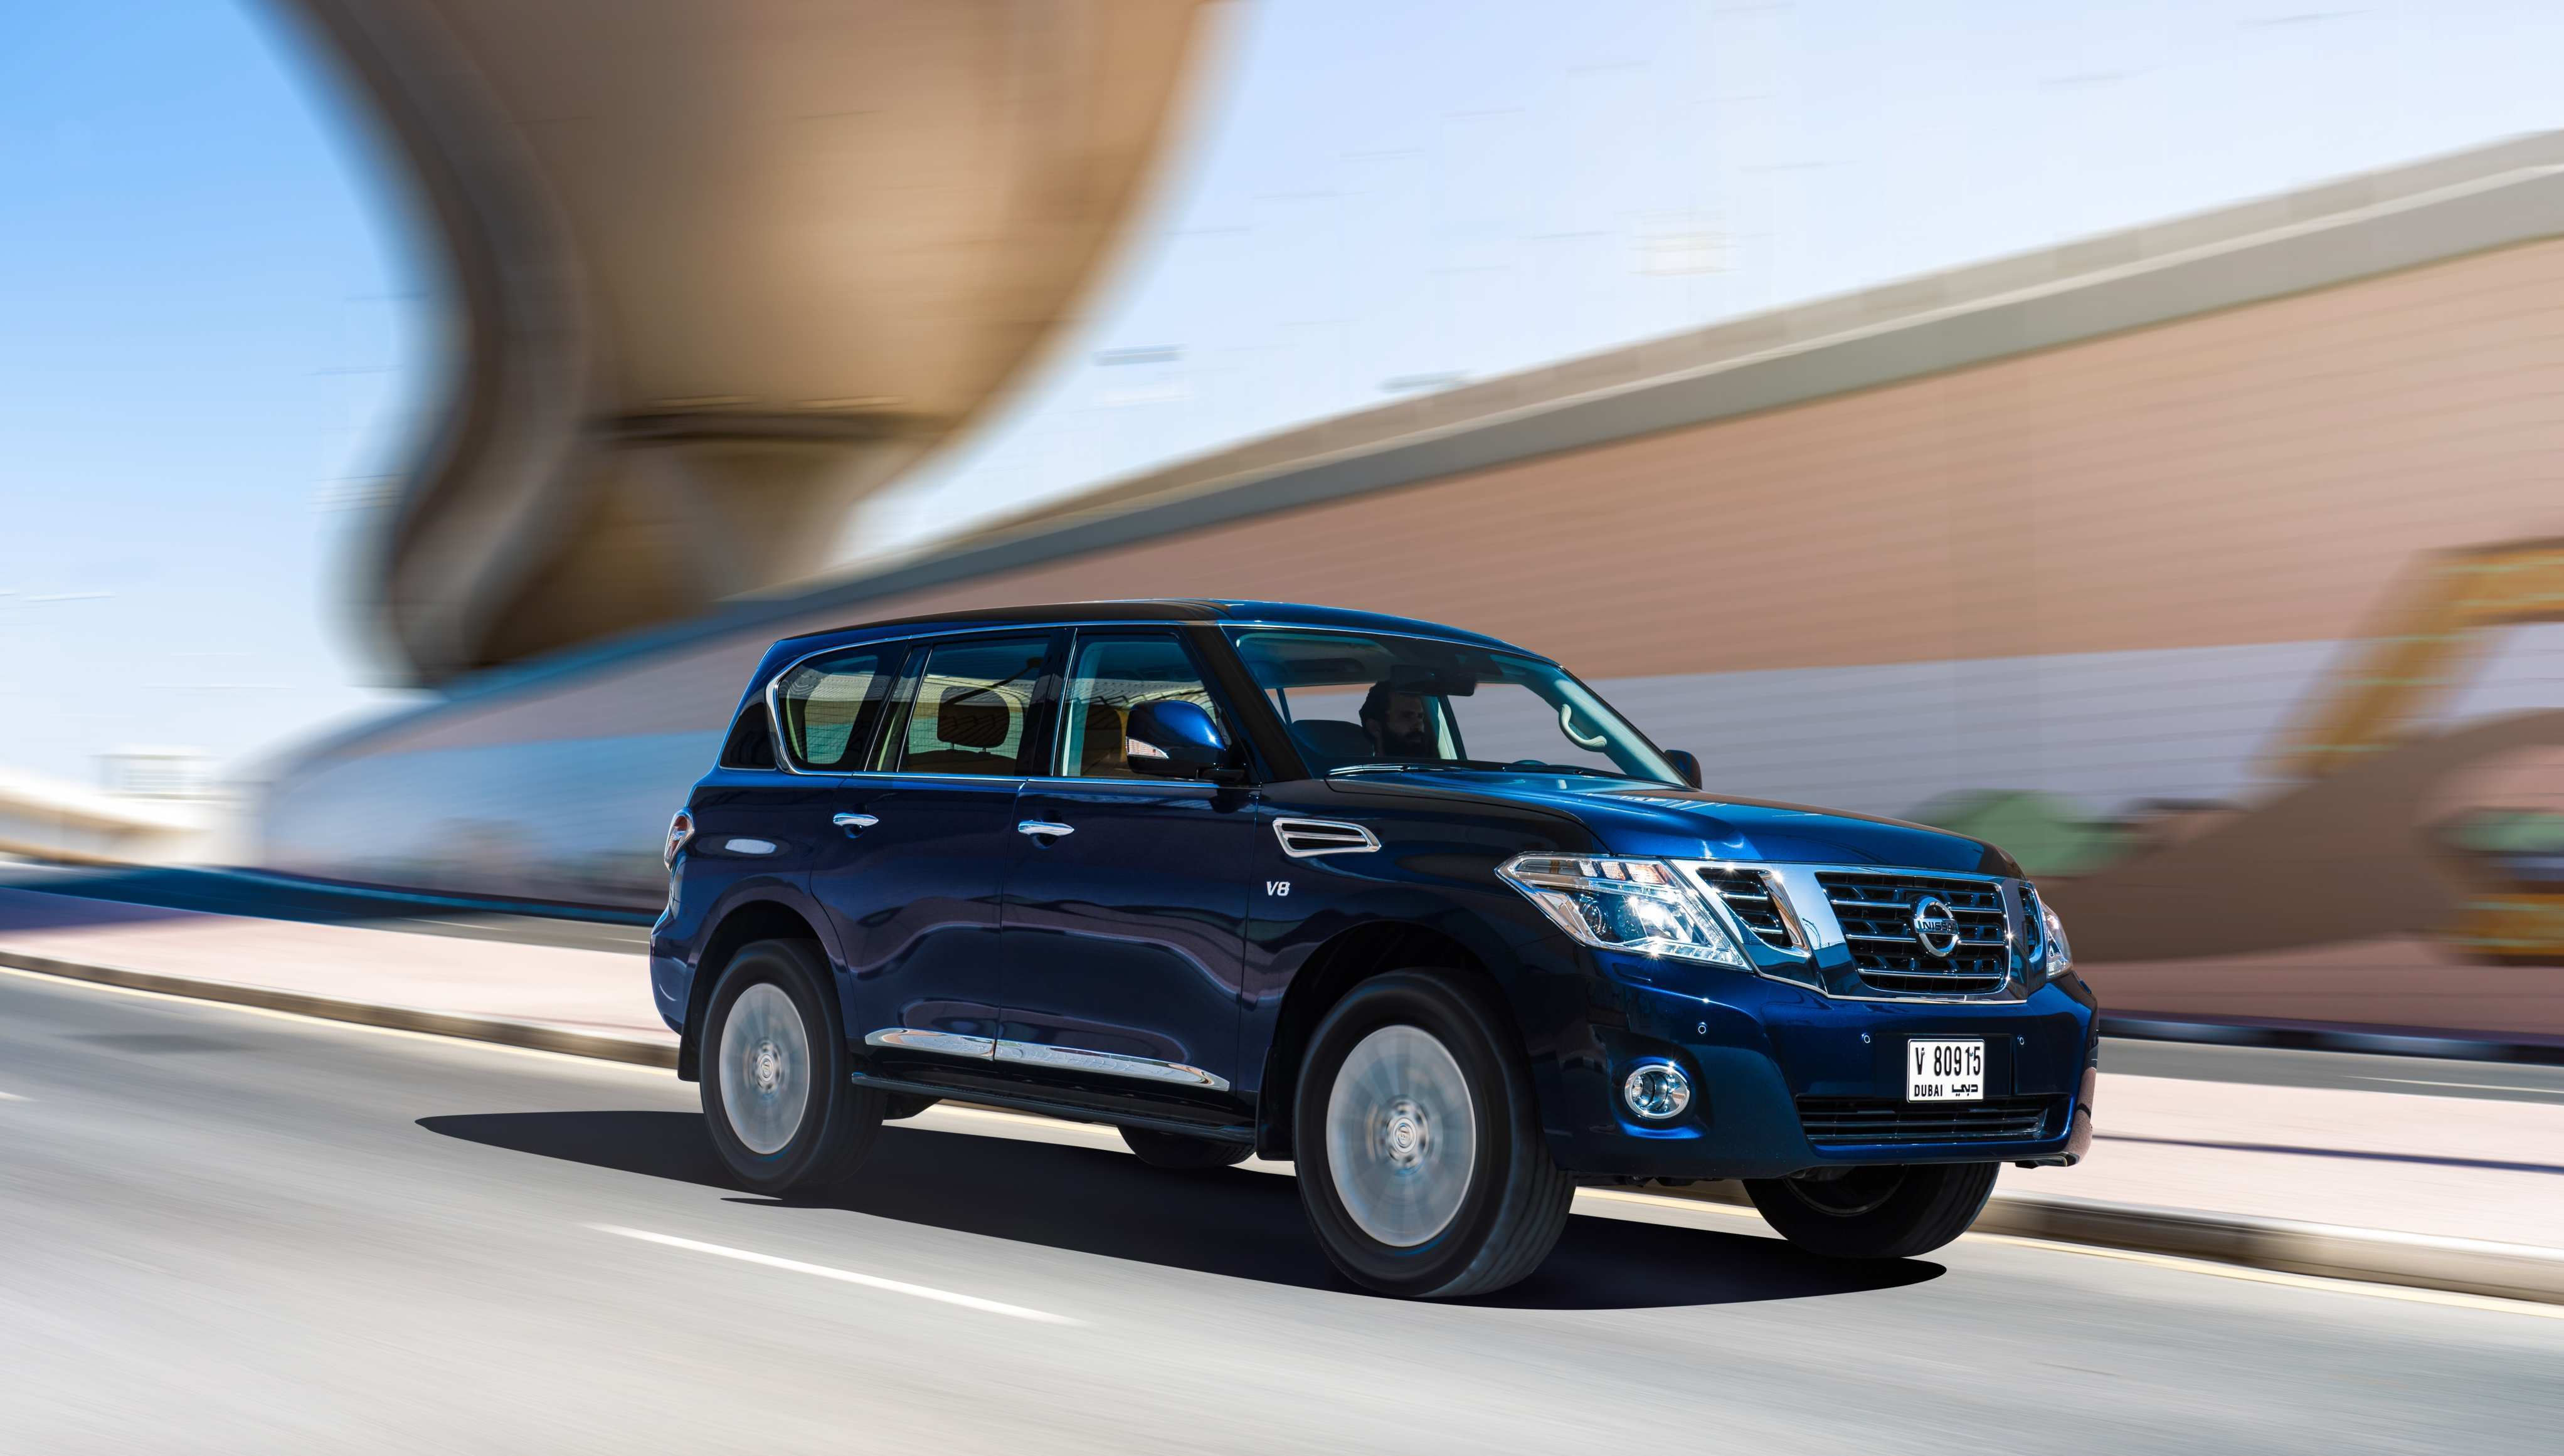 59 The Best New Nissan Patrol 2019 Wallpaper